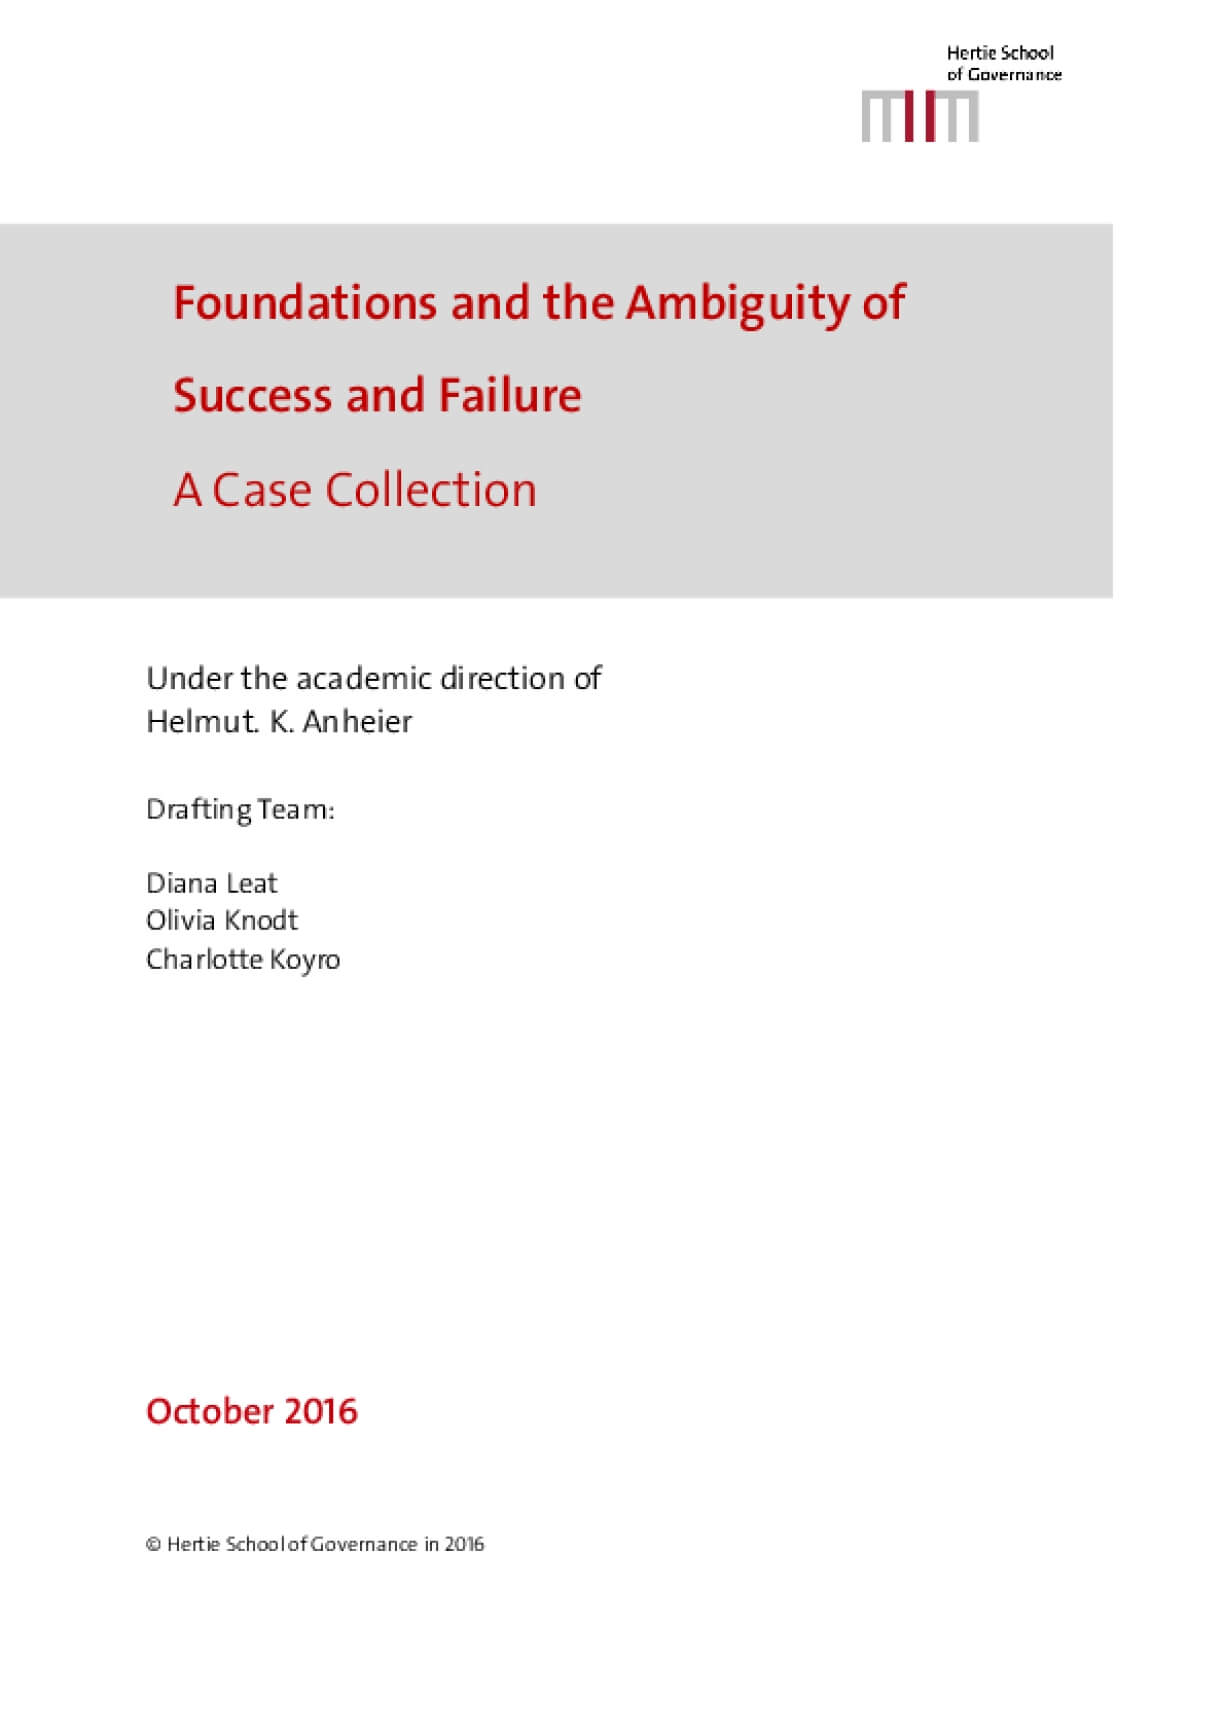 Foundations and the Ambiguity of Success and Failure : A Case Collection